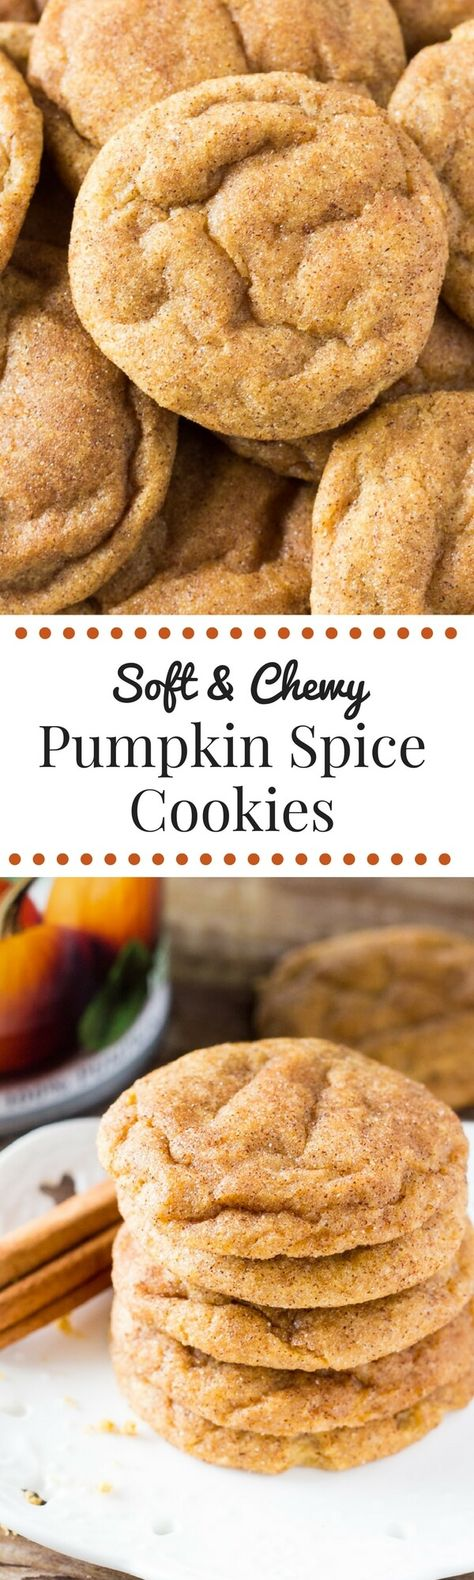 These Pumpkin Cookies are super soft  chewy and filled with fall flavors. These are the PERFECT cookies for fall!